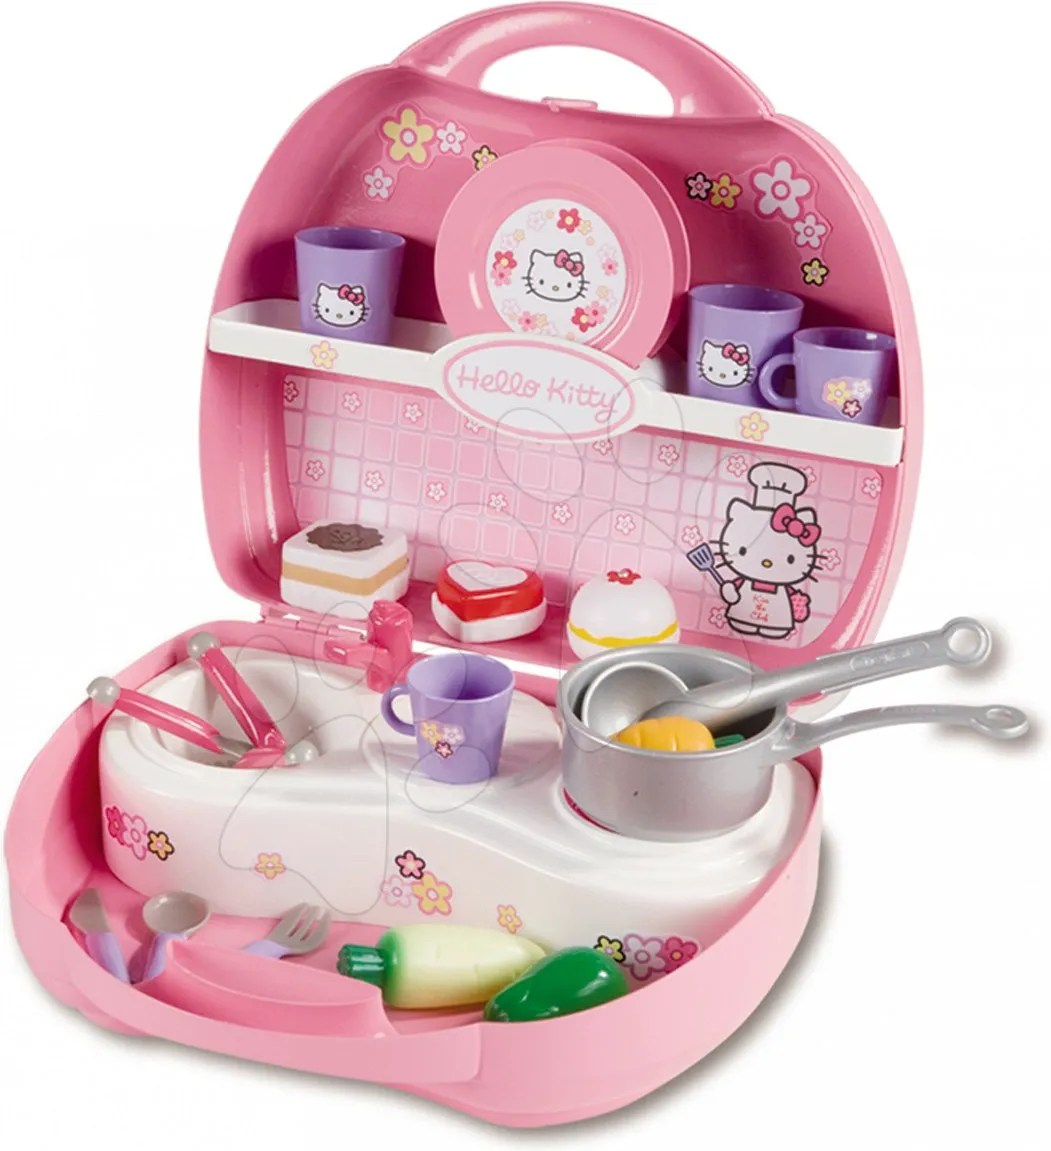 Cuisine Hello Kitty Ecoiffier Smoby Mini Cuisine Hello Kitty 24472 Pricemania